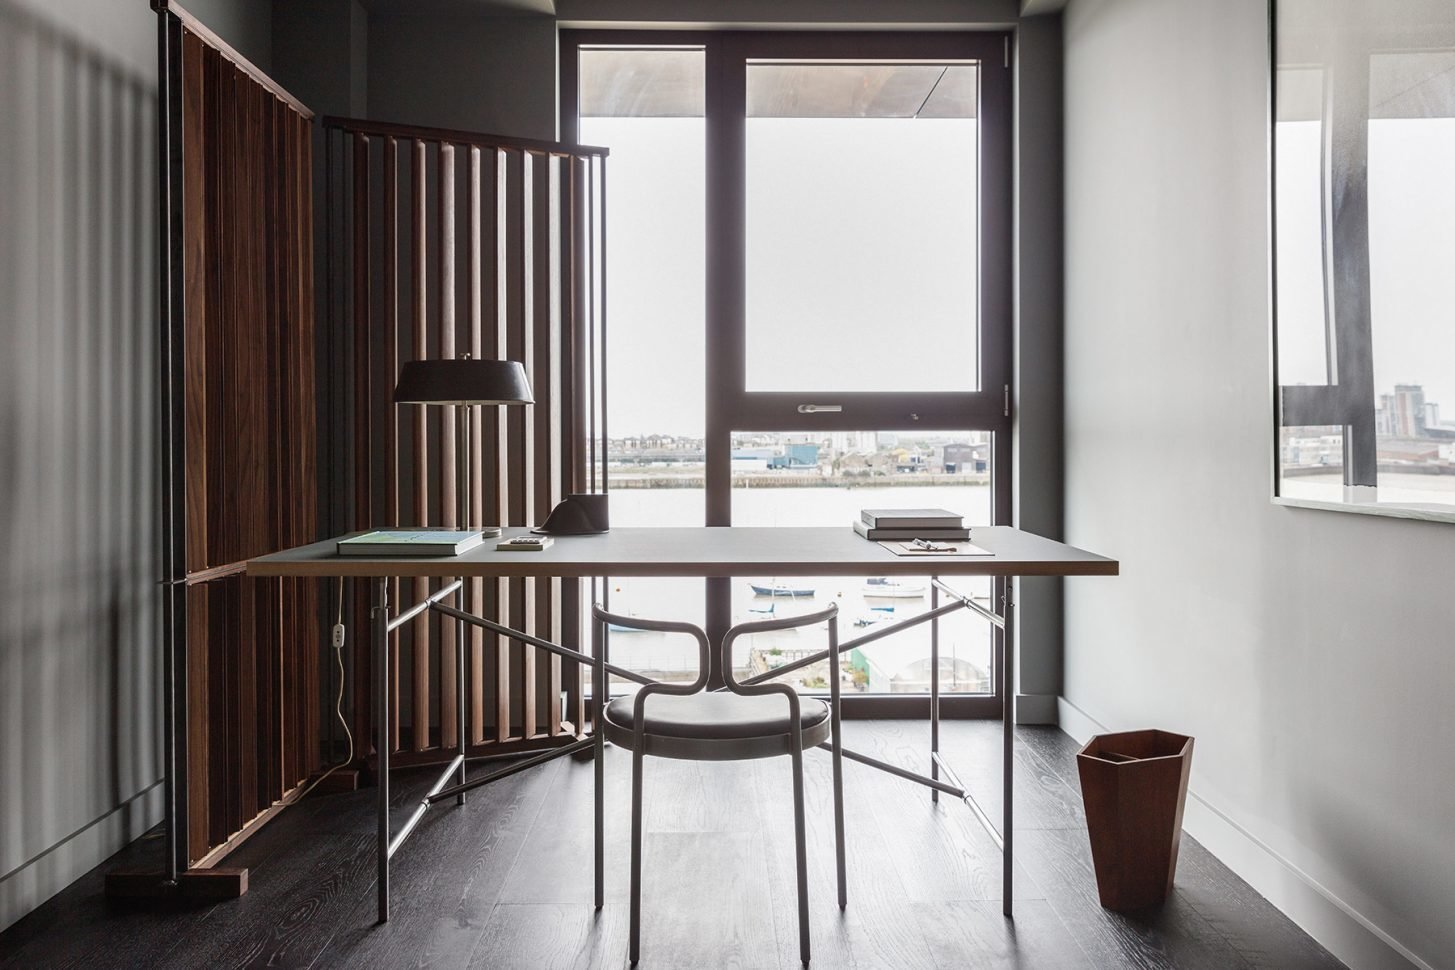 Tagged: Office, Chair, Lamps, Study, Desk, and Dark Hardwood Floor. For Just Under $2 Million, You Could Live in a London Penthouse Outfitted by Cereal Magazine - Photo 9 of 13